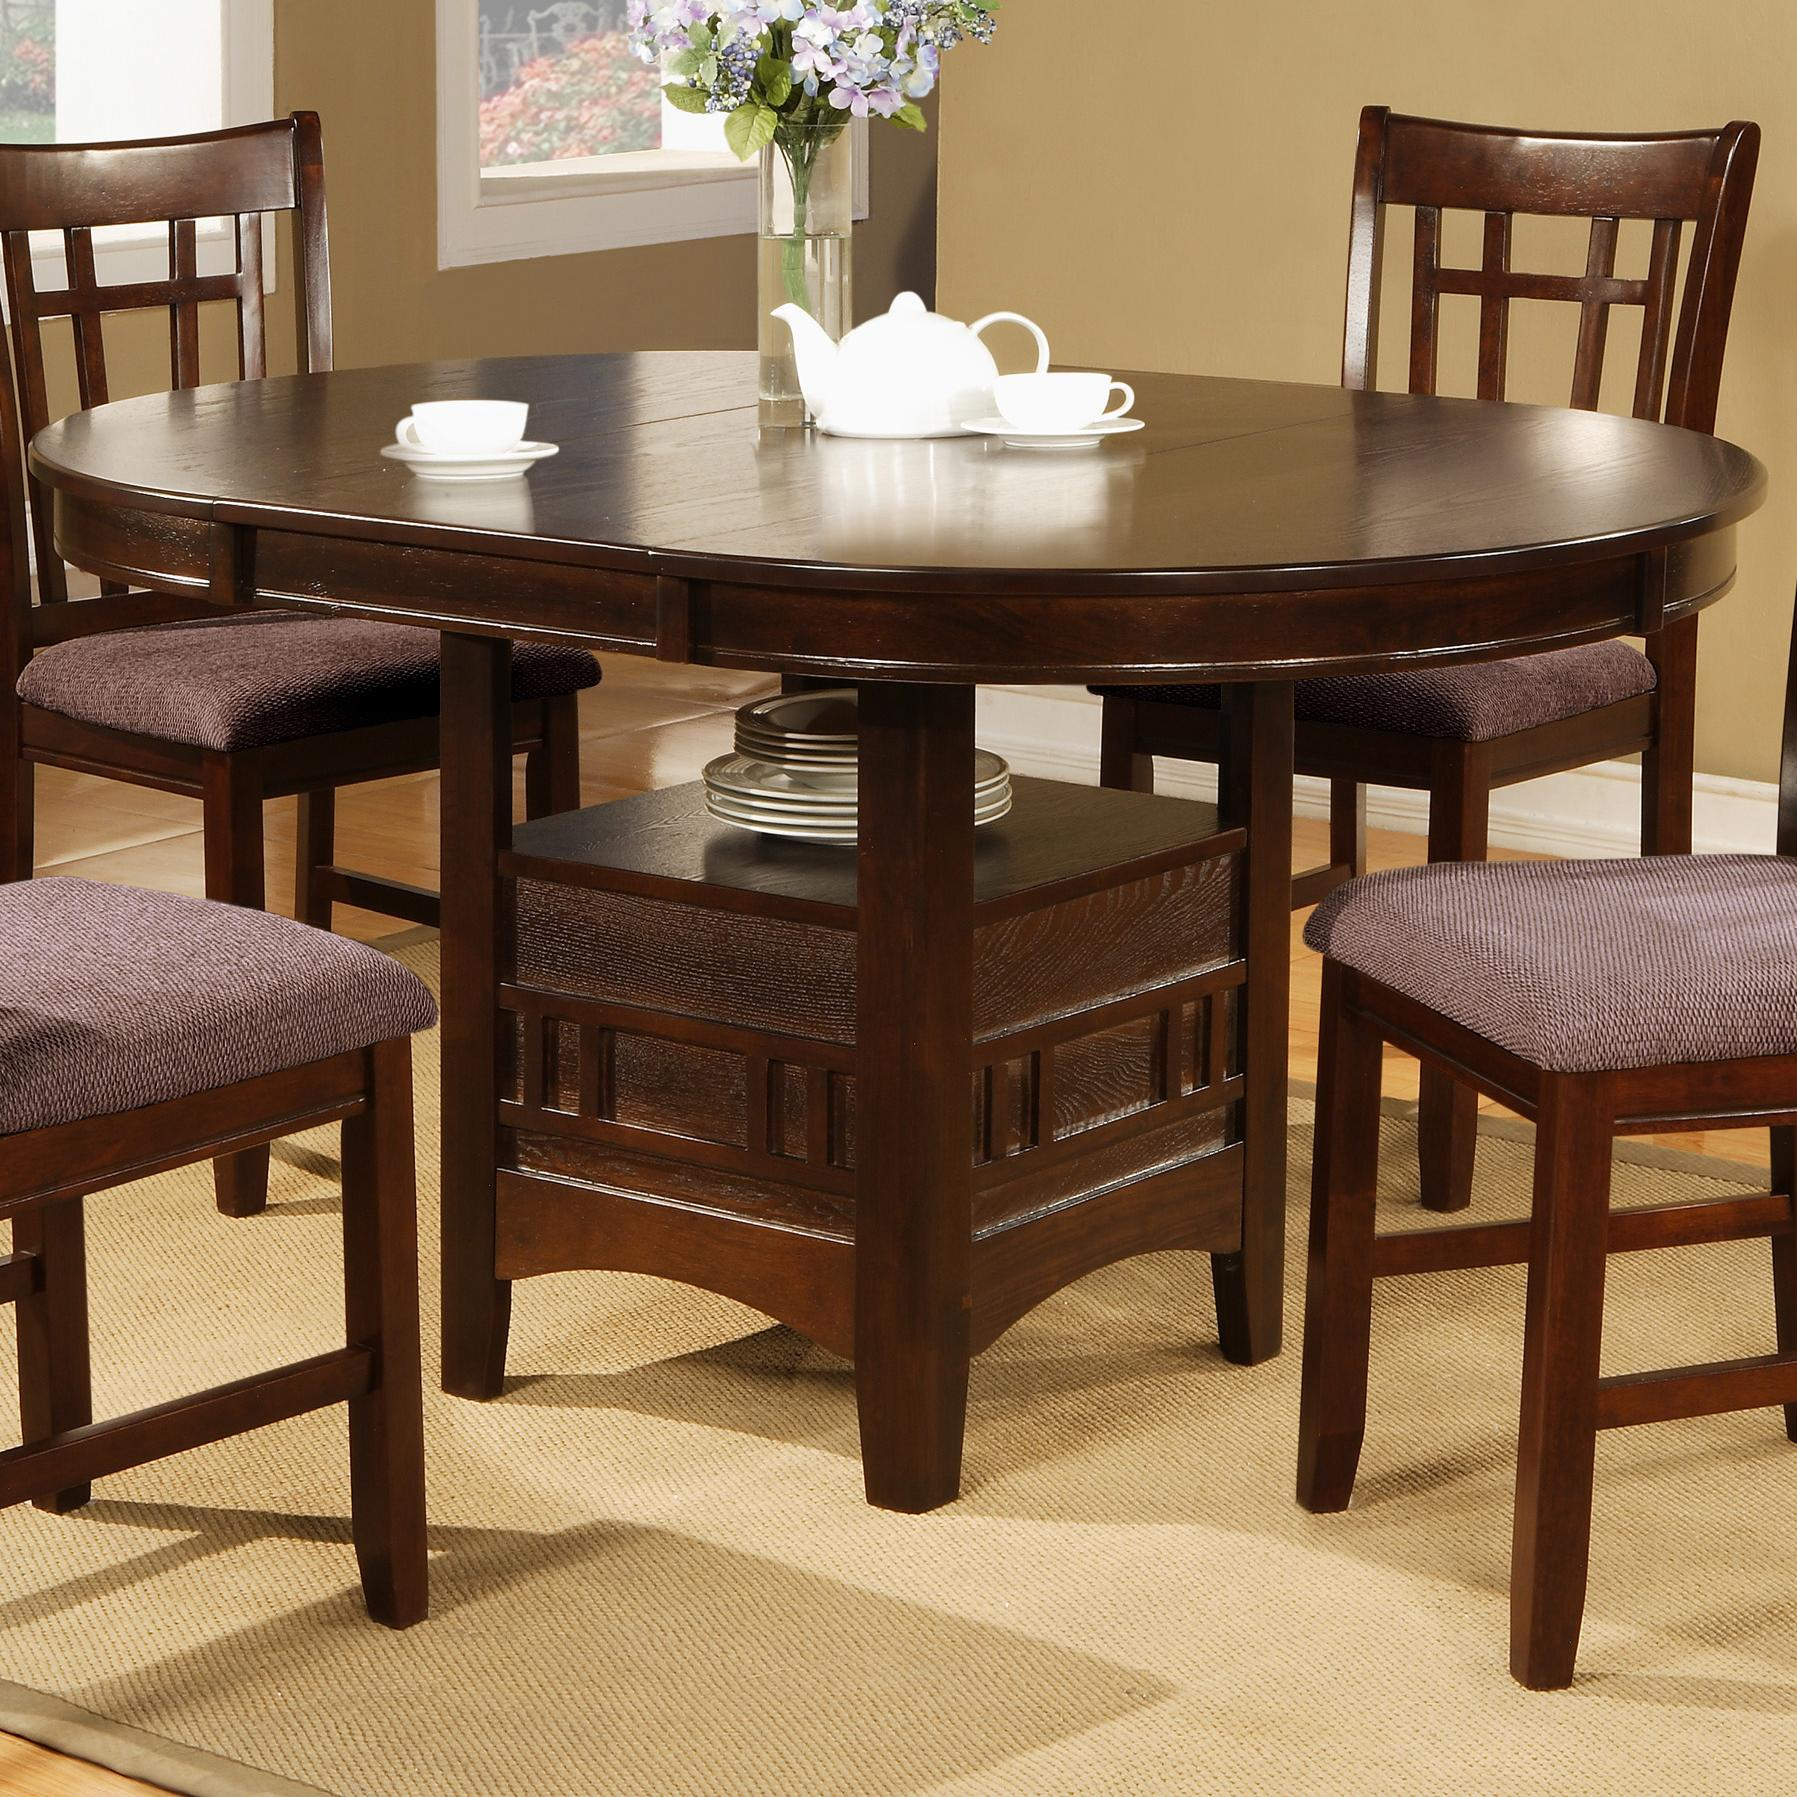 Crown Mark Empire Dining Table - Item Number: 2155-4260-LEG+TOP